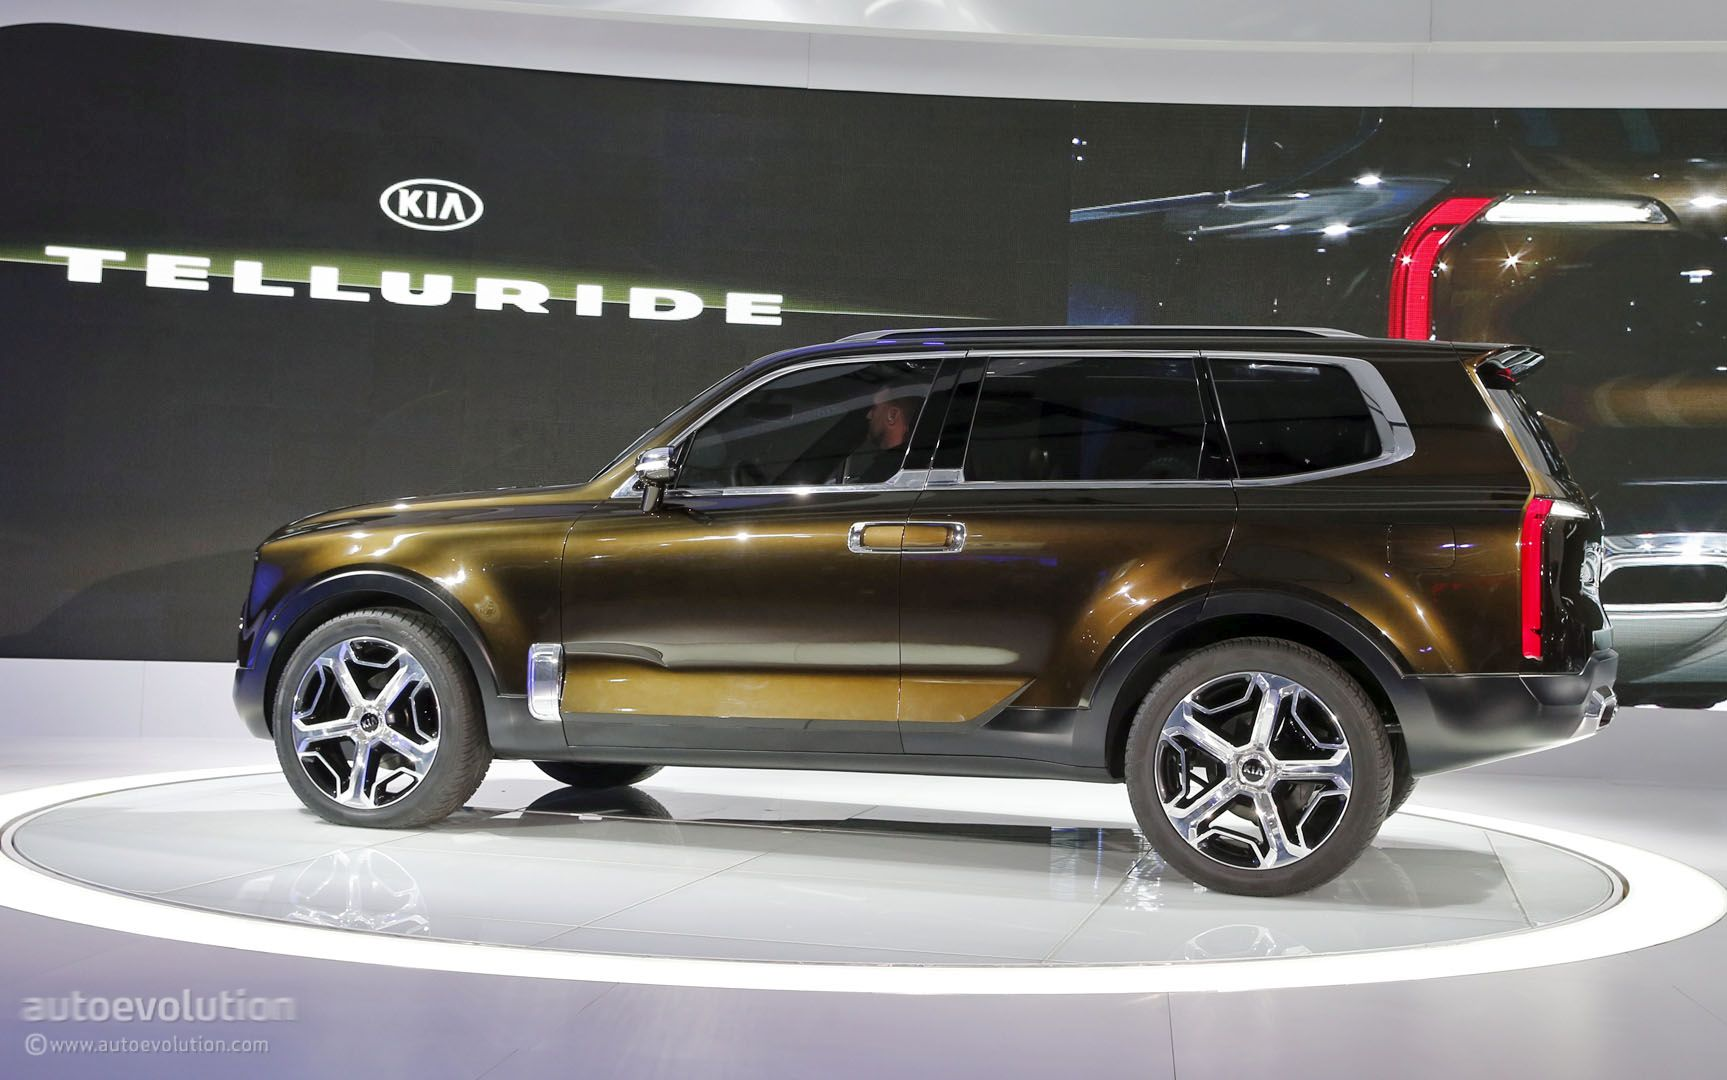 kia telluride concept mixes 400 hybrid hp sorento platform and bad boy suv looks autoevolution. Black Bedroom Furniture Sets. Home Design Ideas